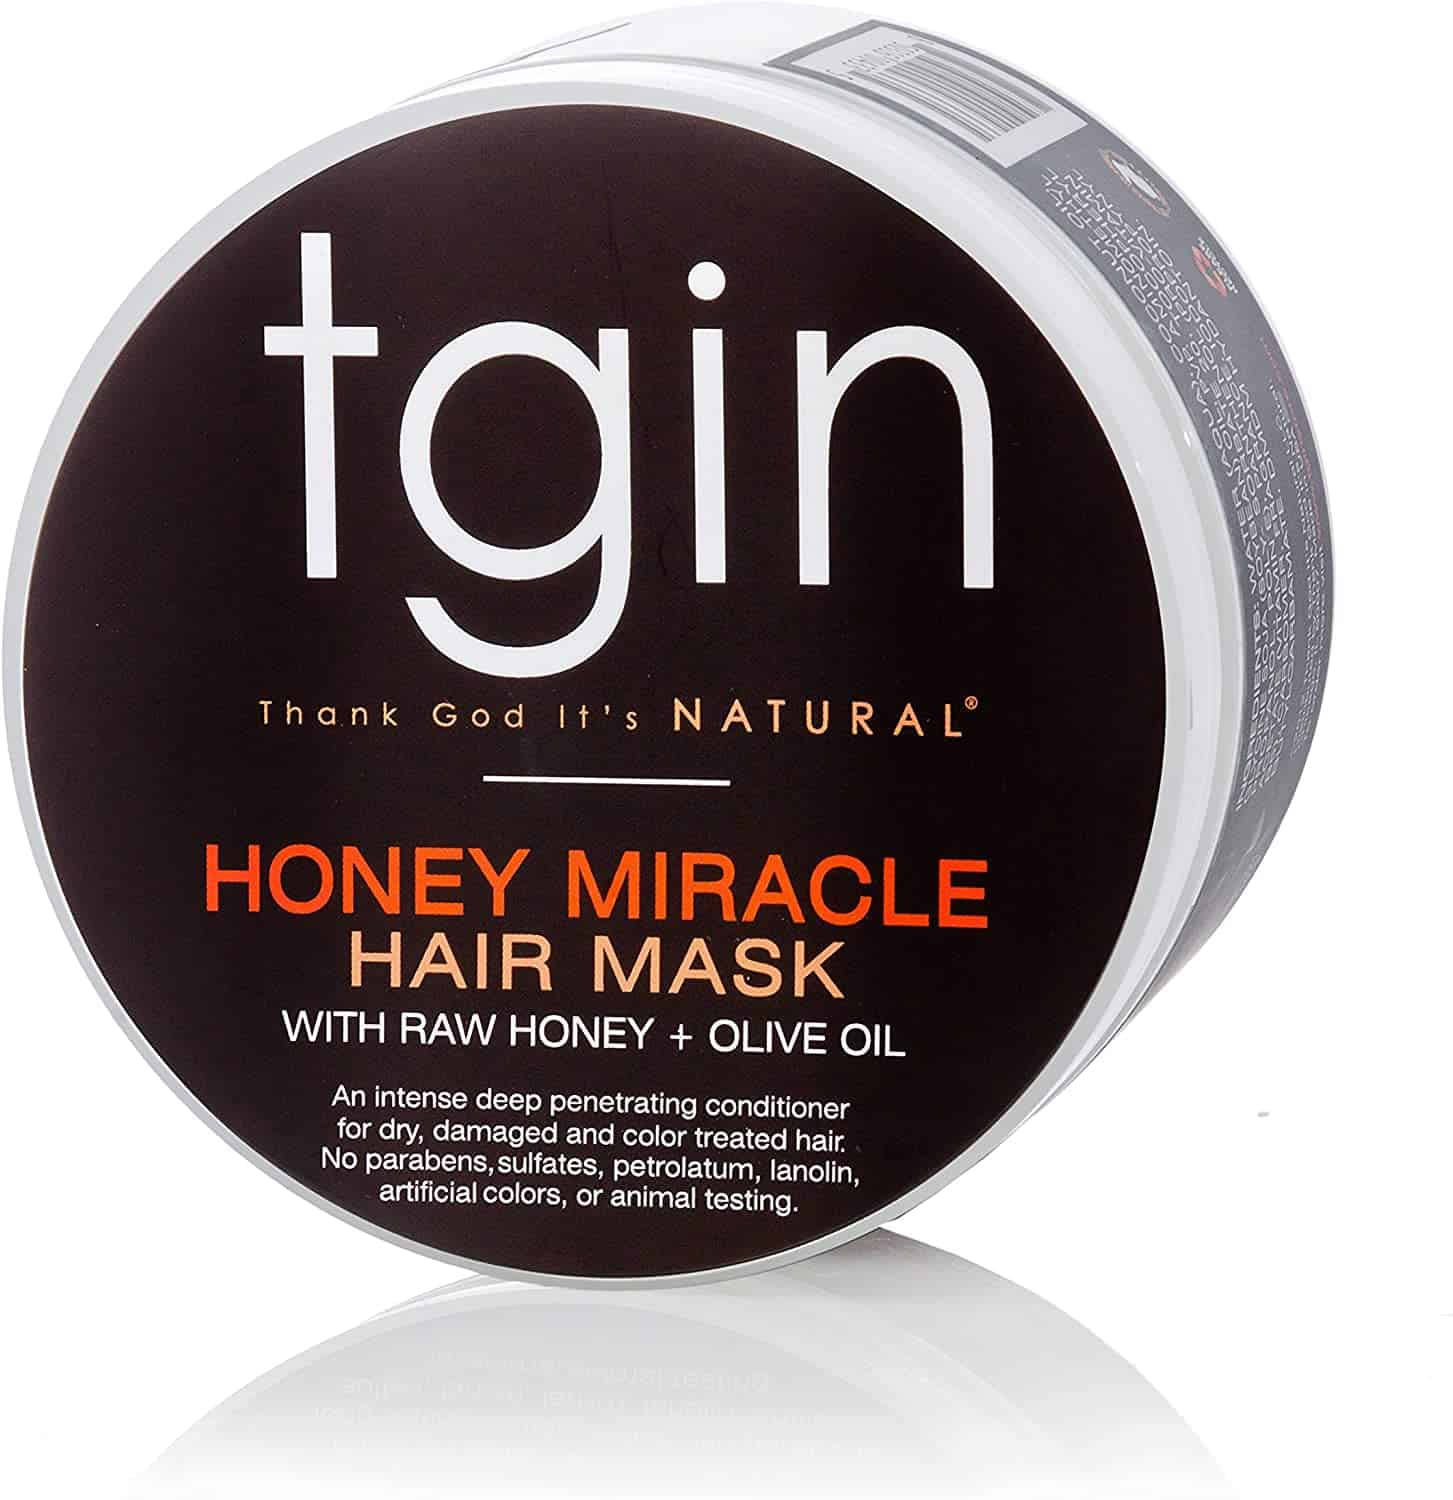 best deep conditioner, TGIN honey miracle hair mask